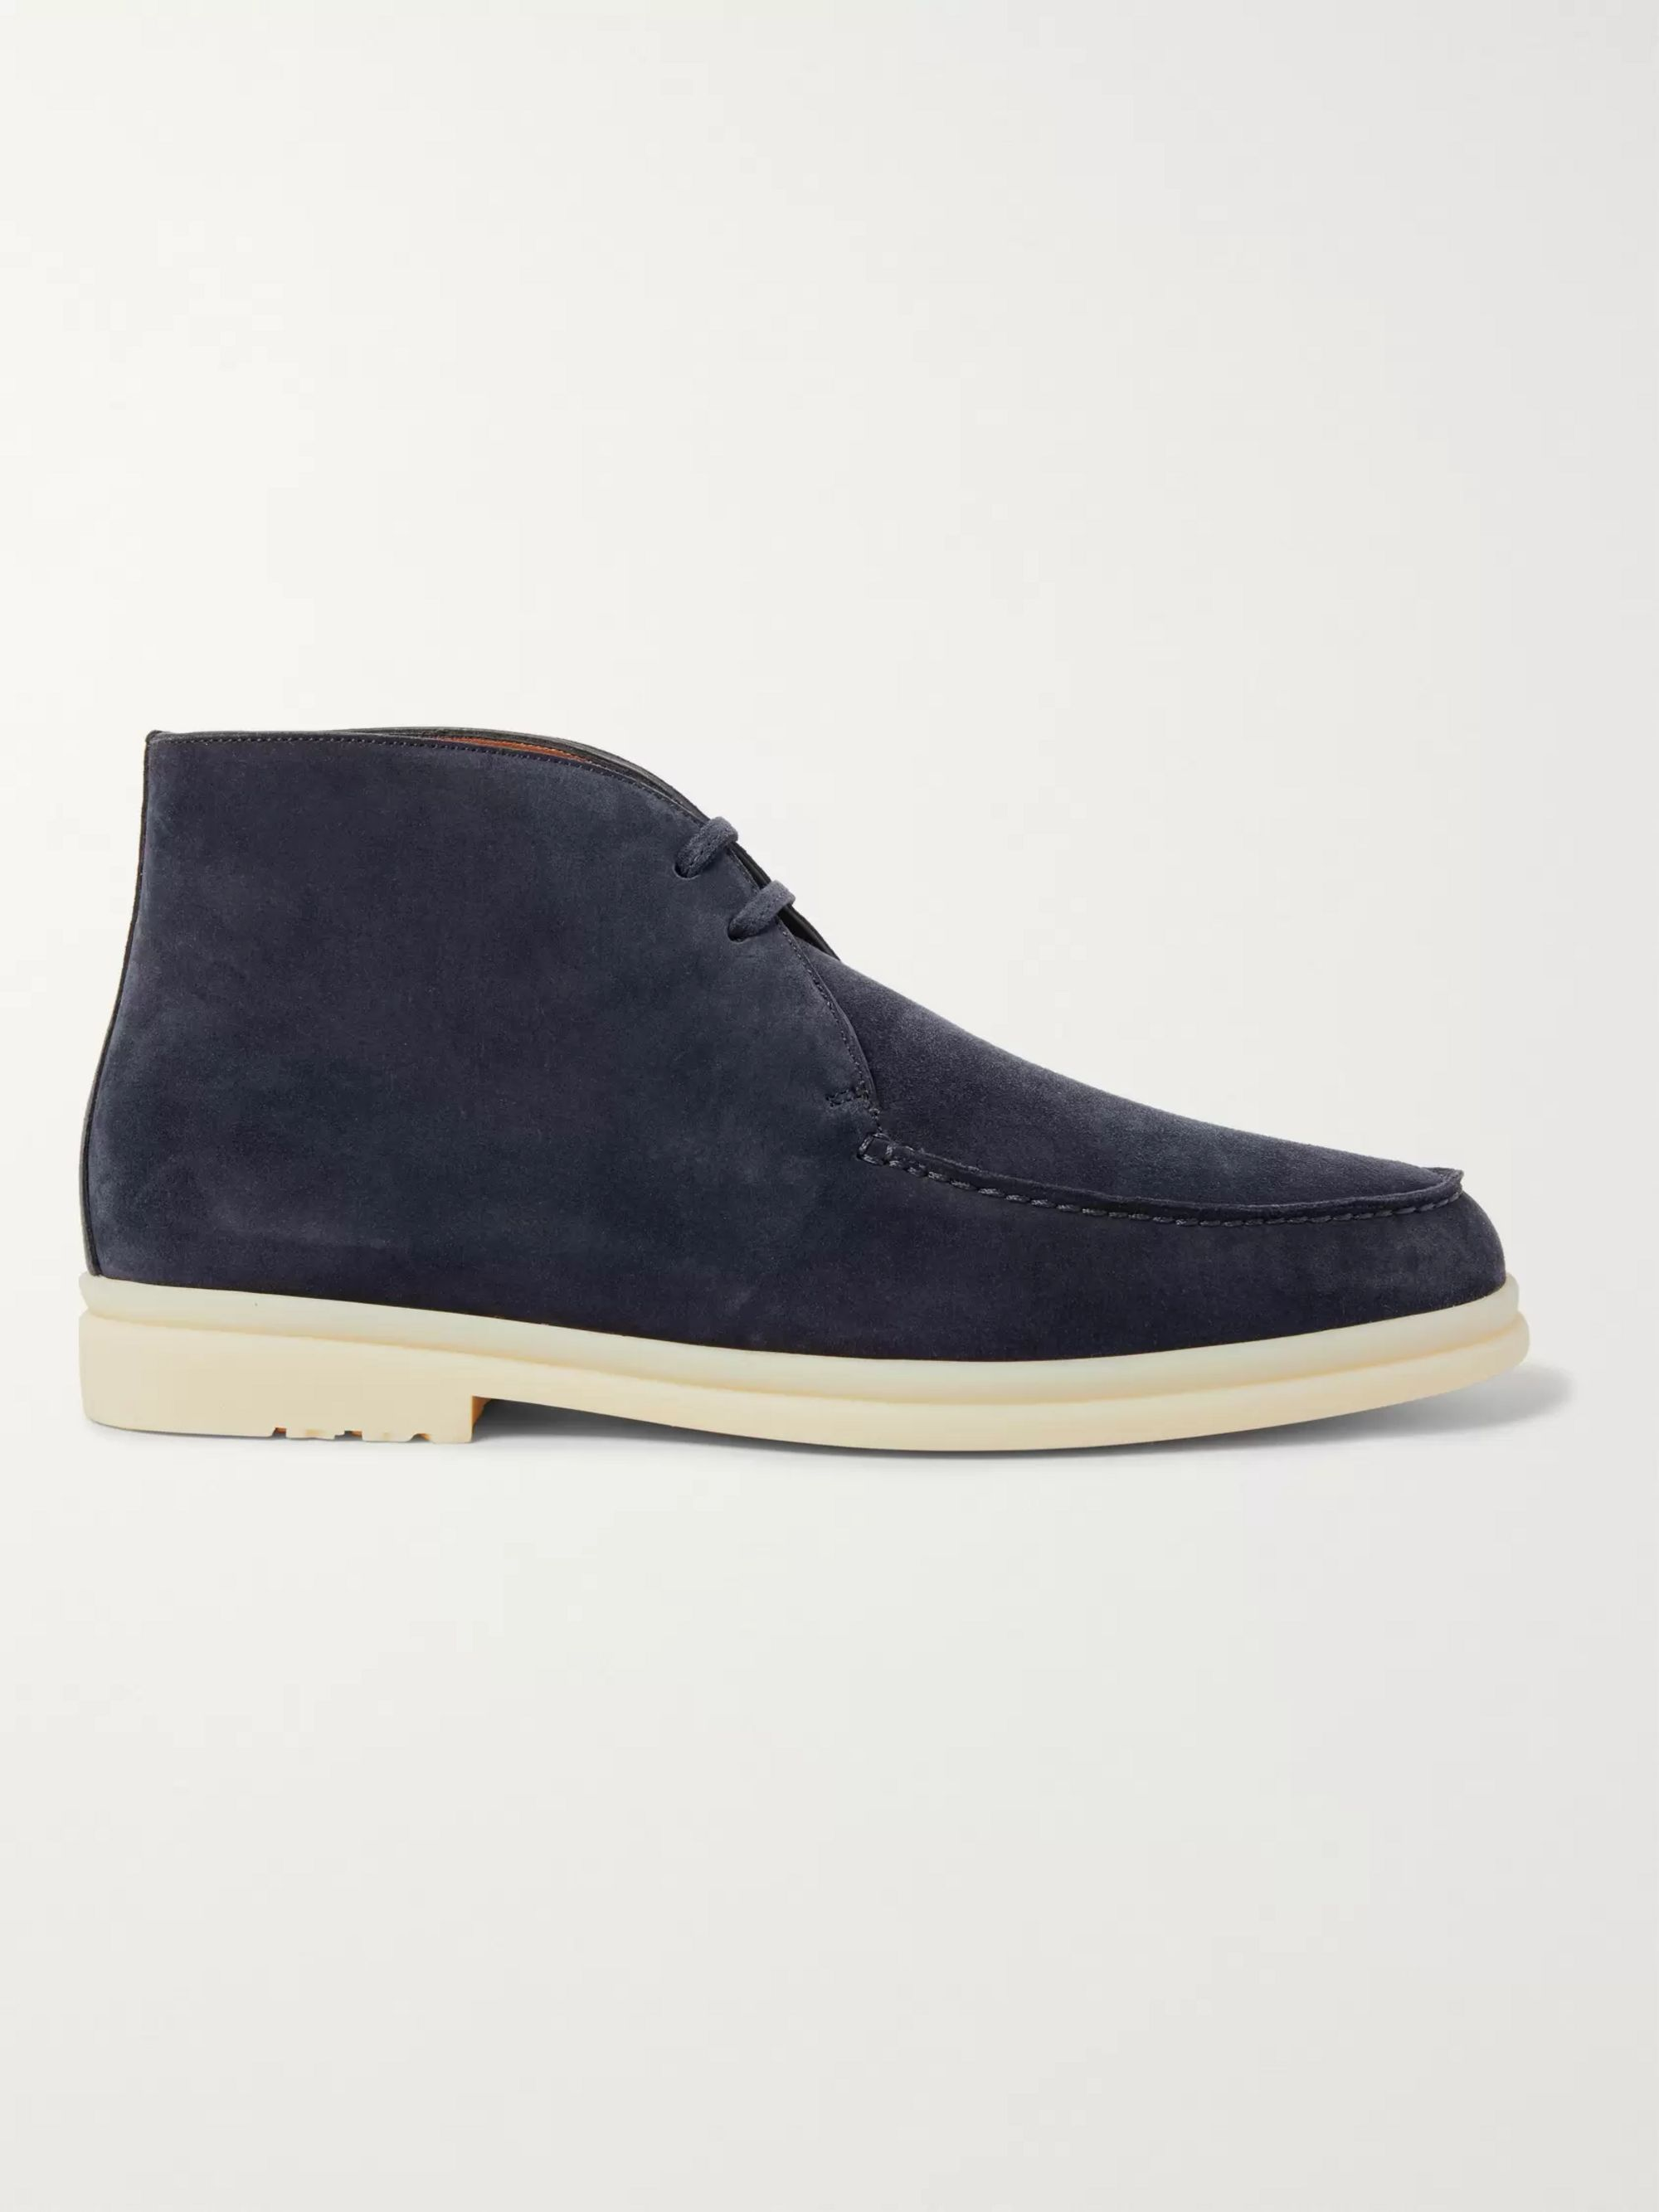 Loro Piana Walk and Walk Suede Chukka Boots